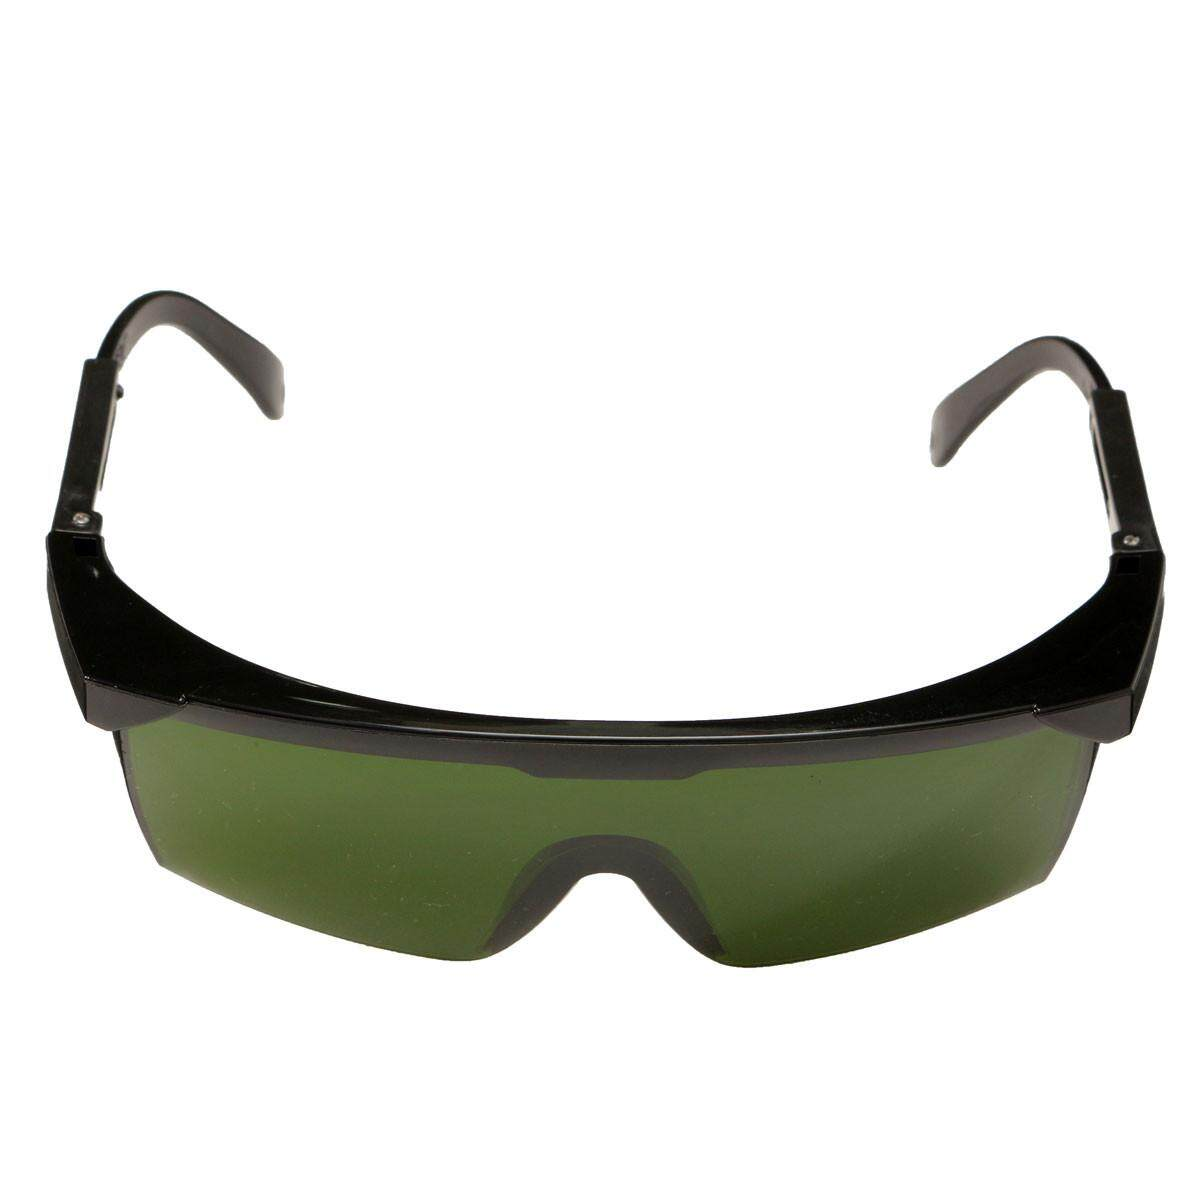 Lighting Laser Protection Protective Goggles Glasses IPL-2 OD+4D 200nm-2000nm